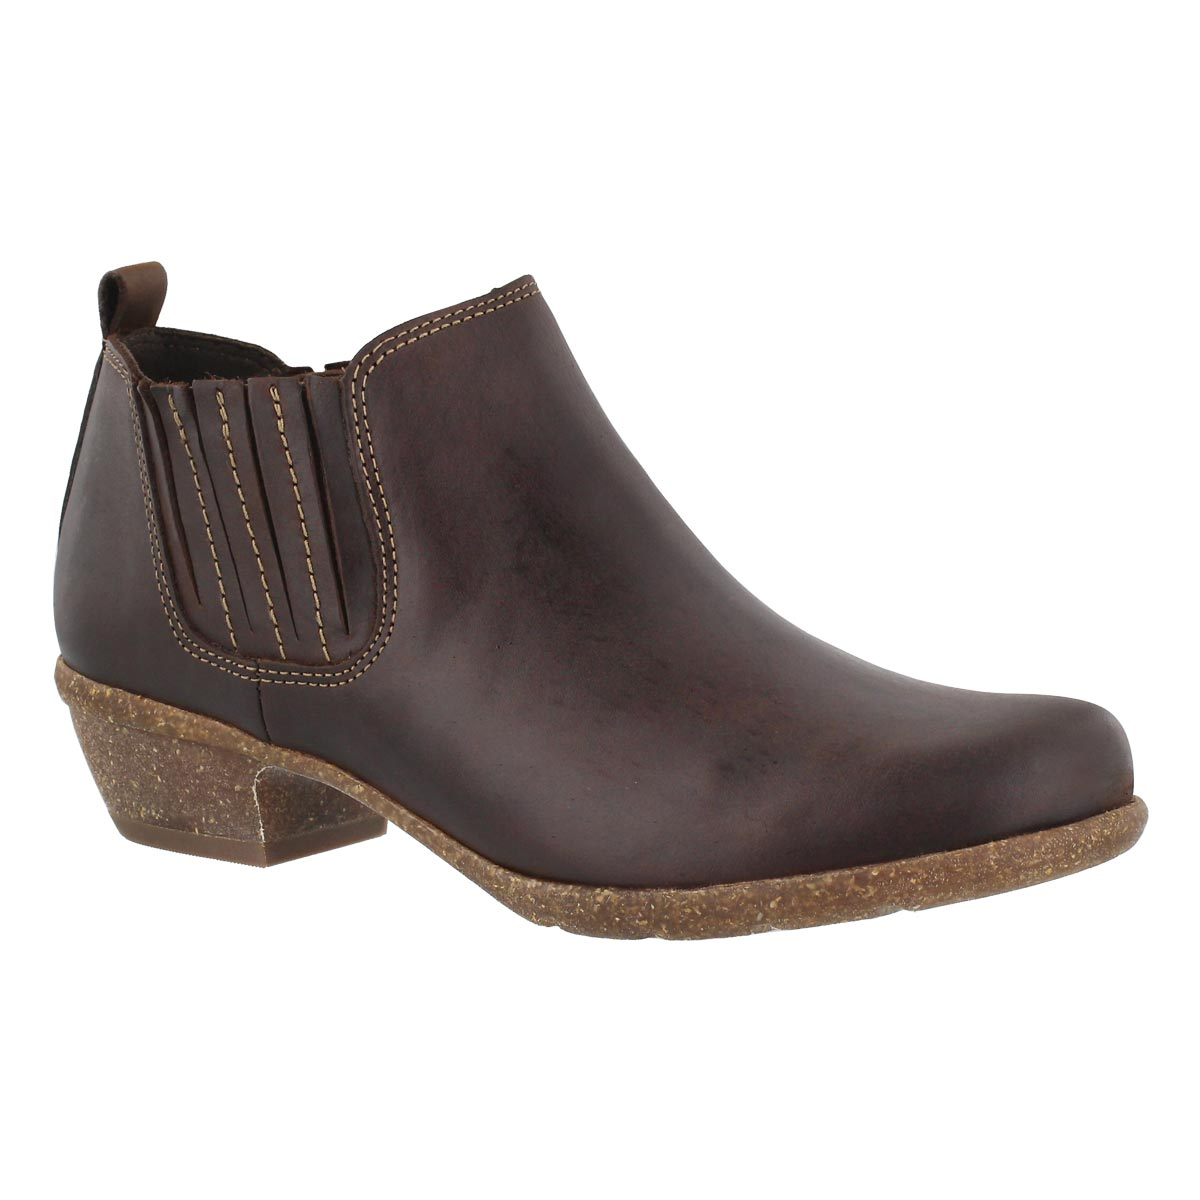 Women's WILROSE JADE brown slip on casual boots